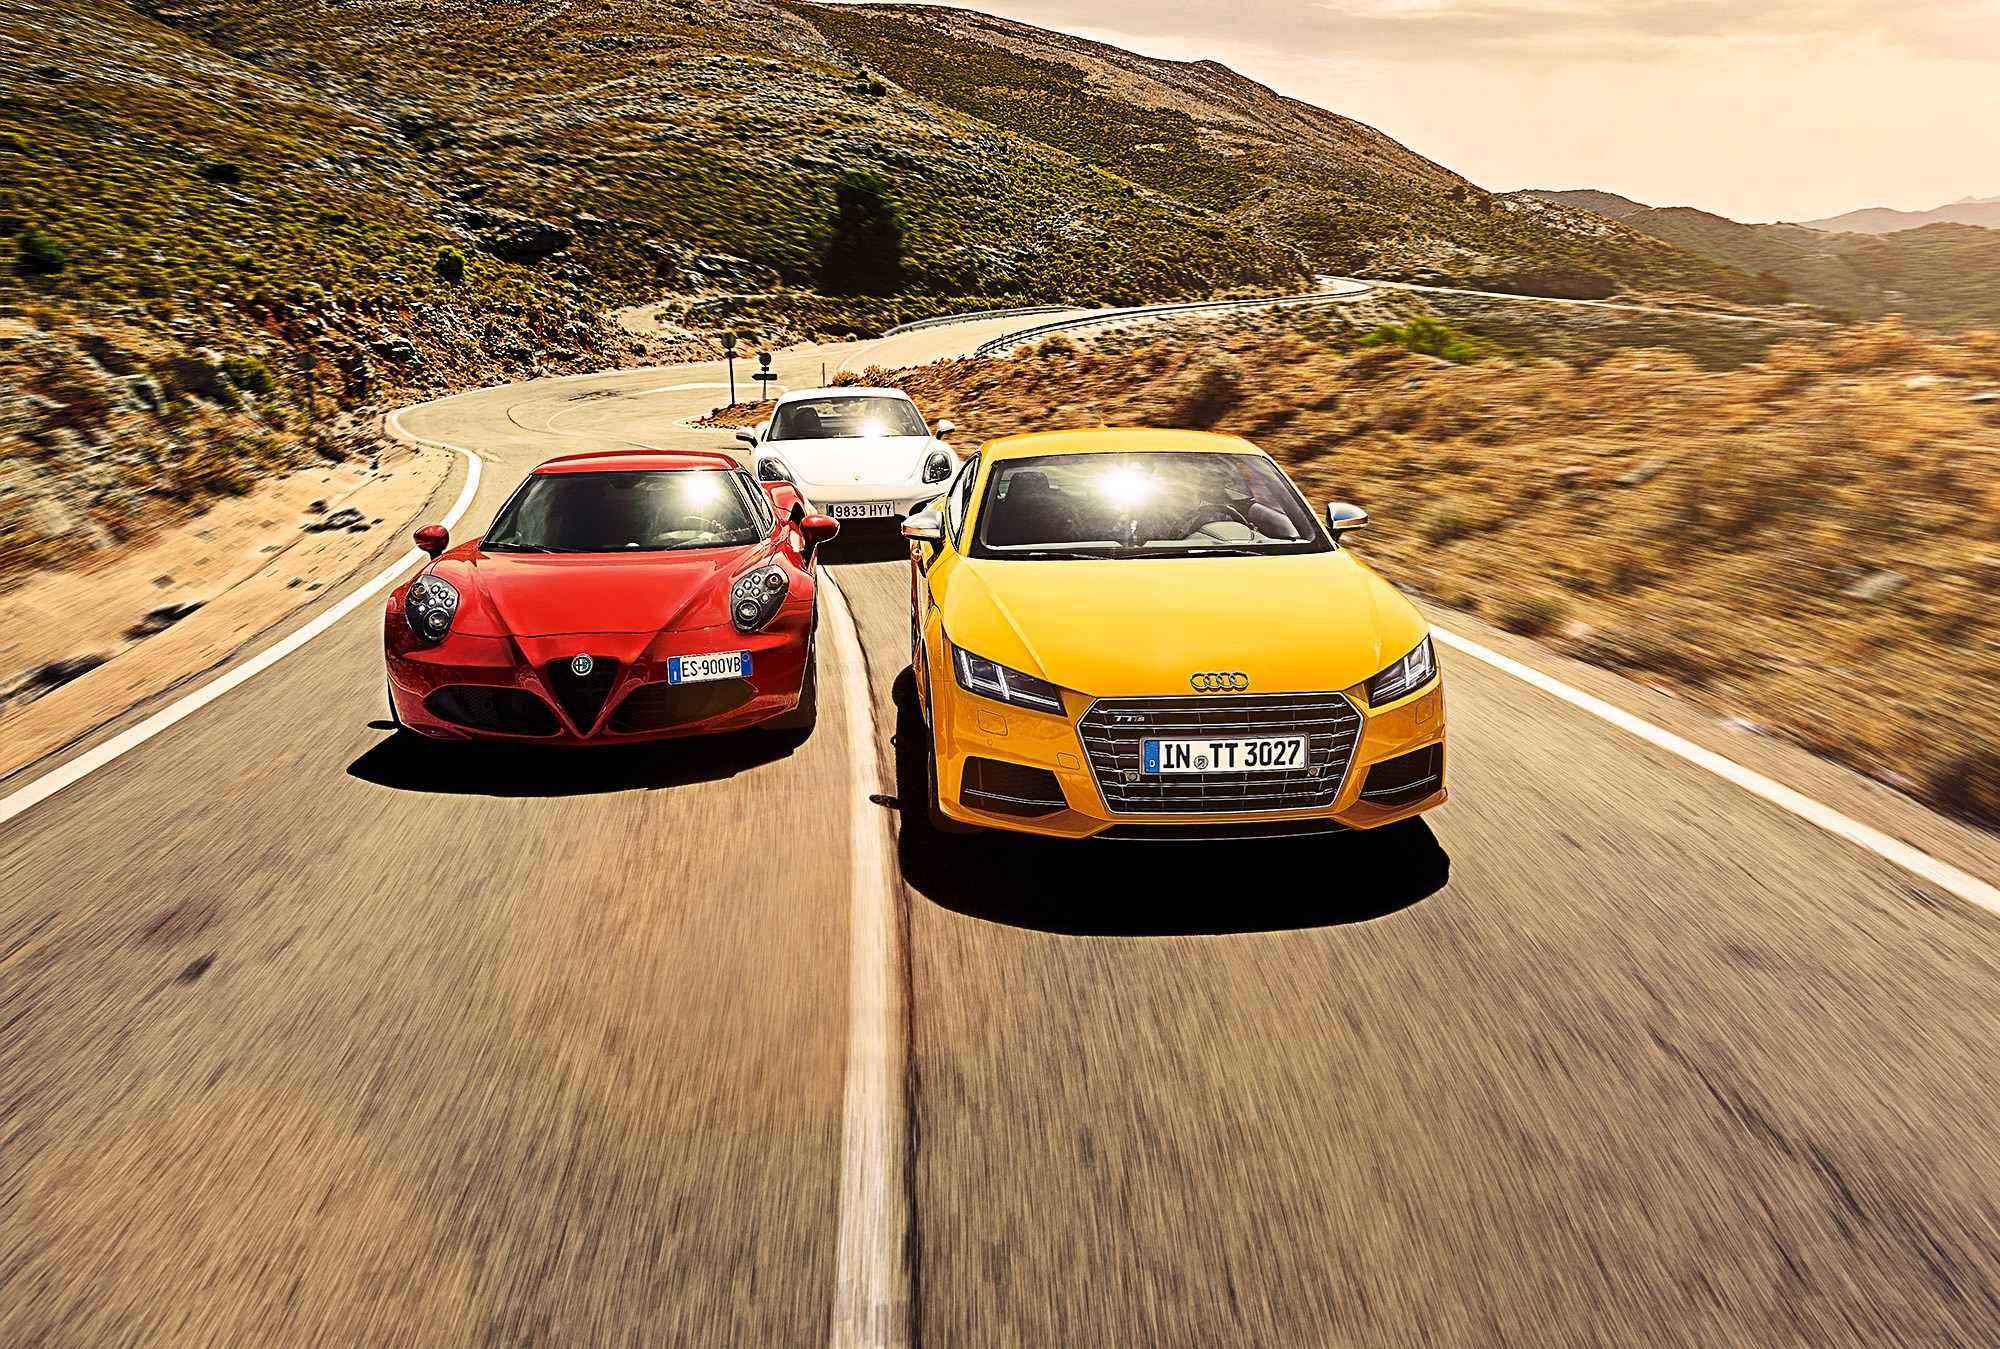 Audi Tt Vs Bmw 2 Series Twin Test Review 2015 Car Magazine Alfa Romeo Rear Axle 4c Red Yellow And Porsche Cayman Silver